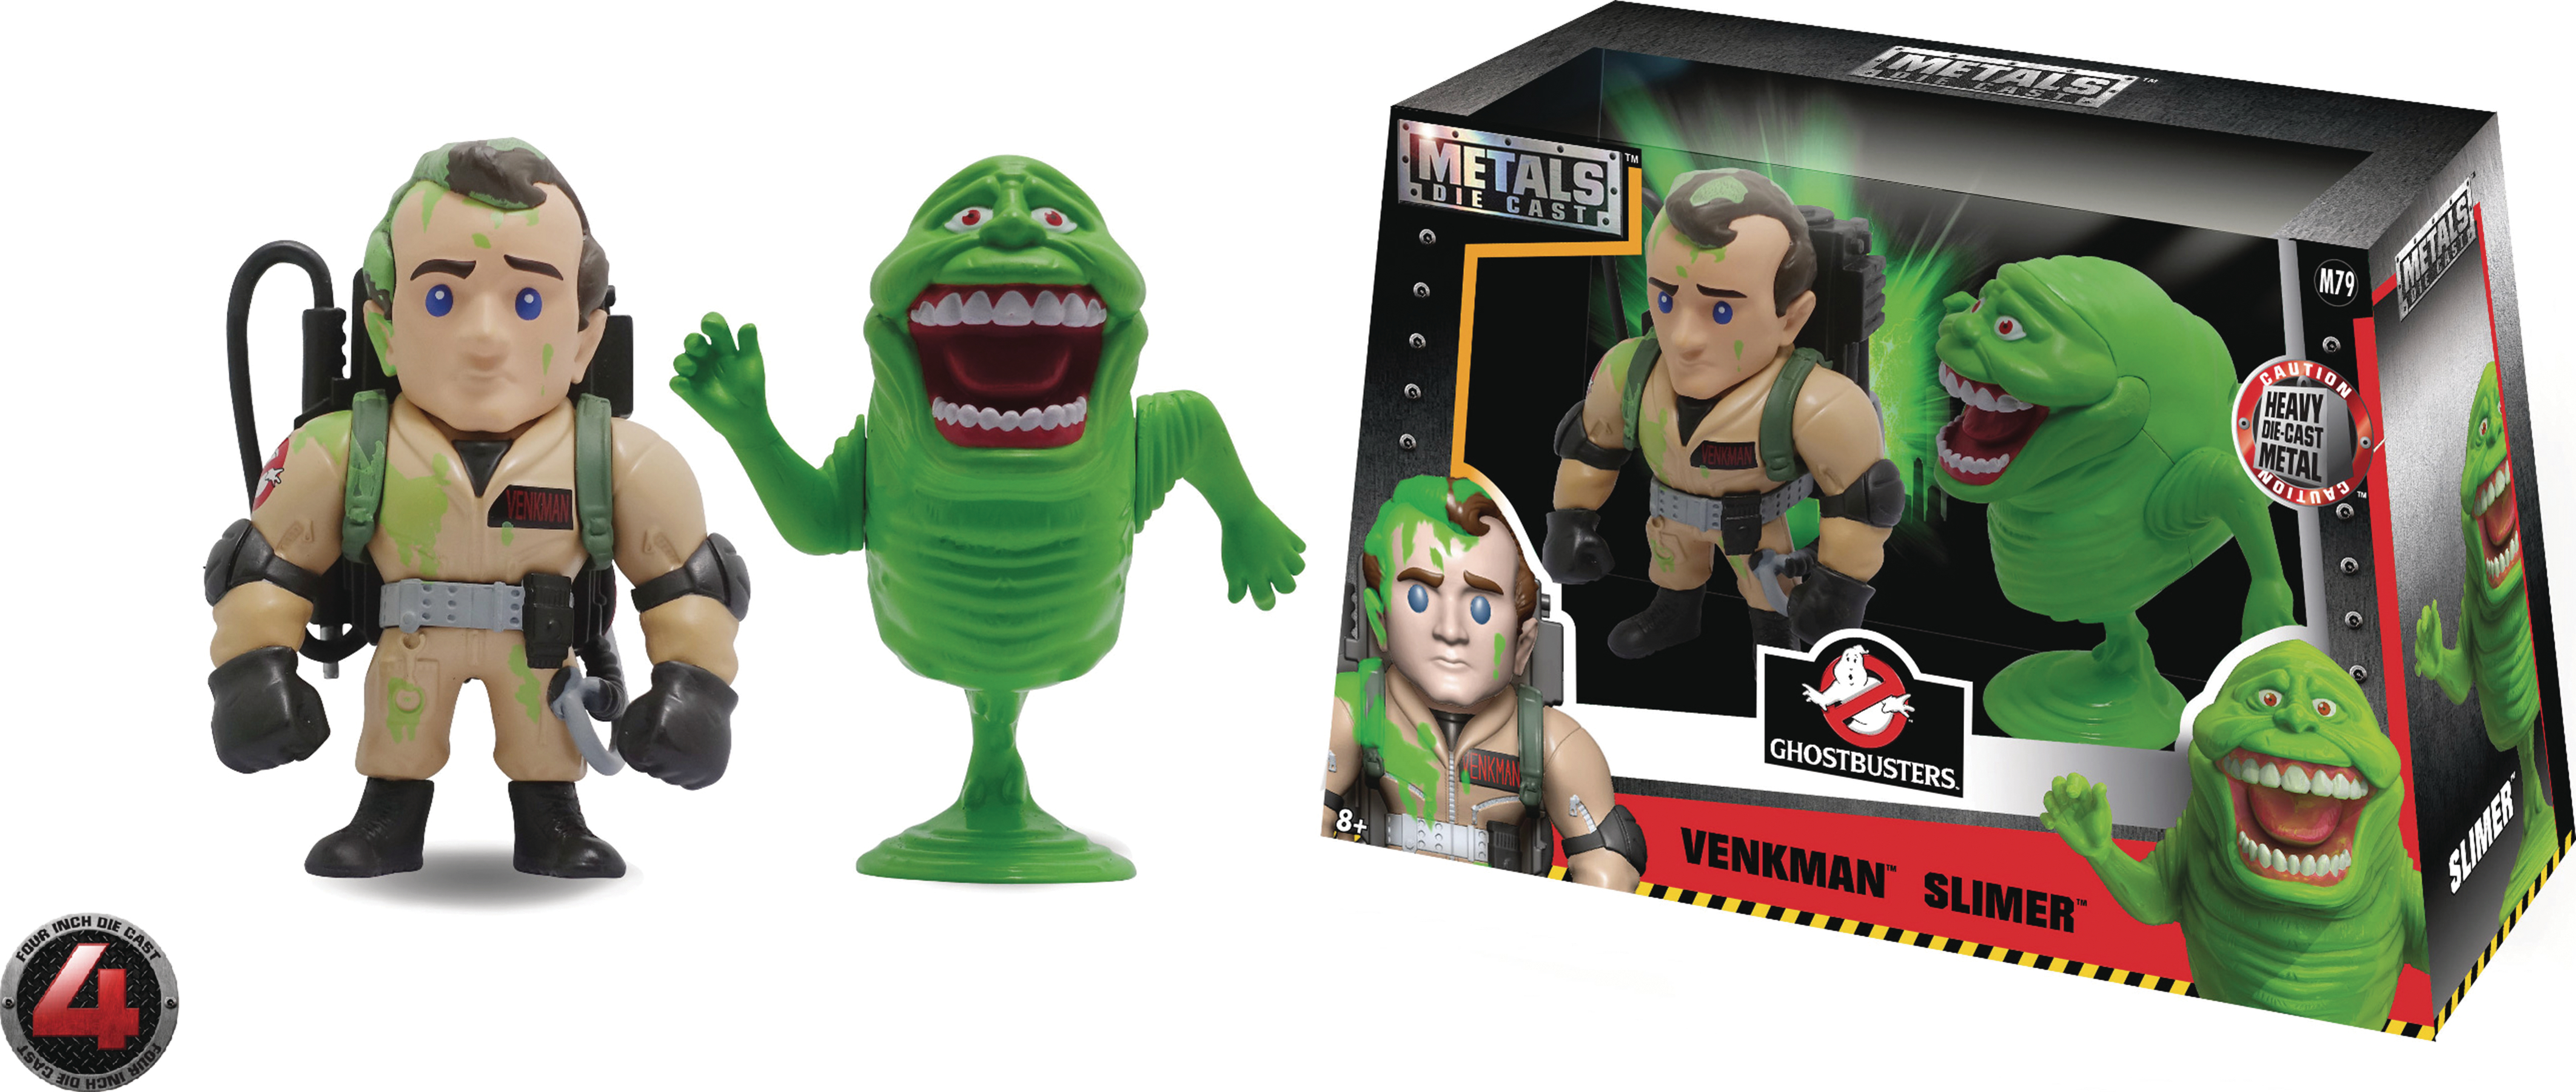 METALS GHOSTBUSTERS PETER/SLIMER 4IN DIE-CAST FIG 2PK